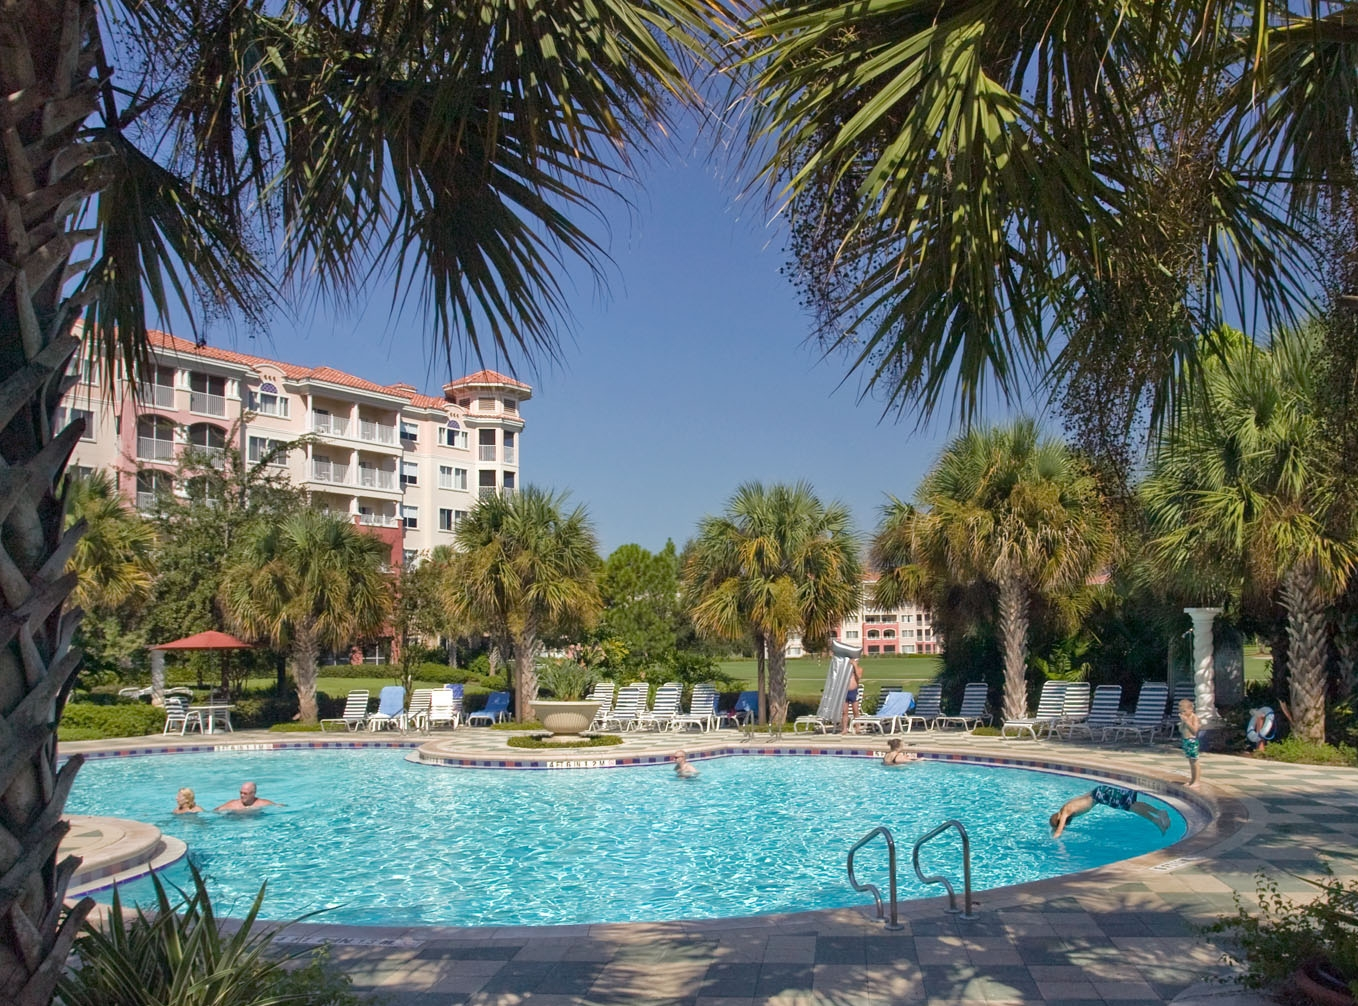 Marriott Grande Vista Resort, Orlando